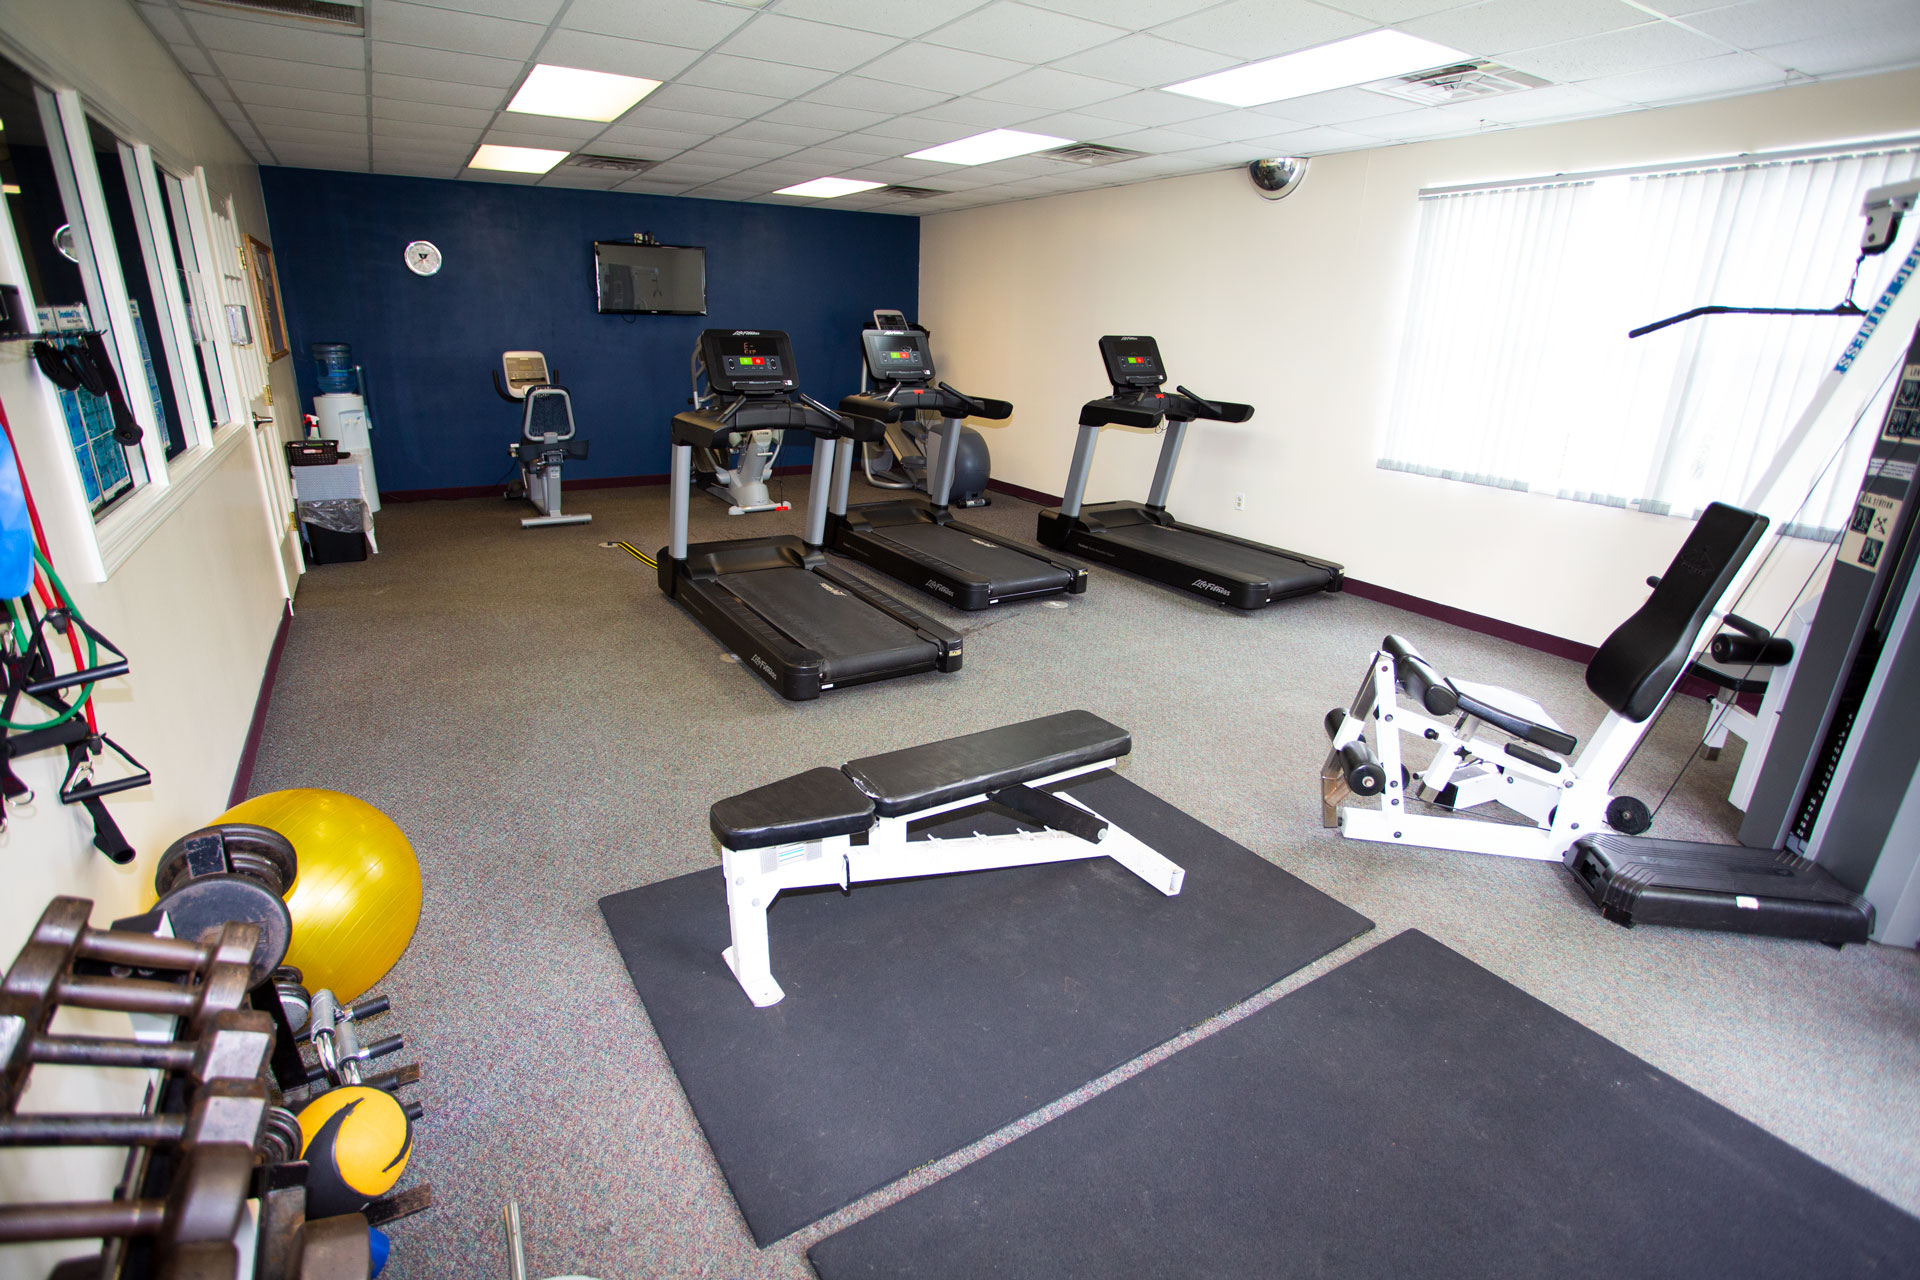 ywca westfield ny gym airbnb afterschool programs fitness 24 hour workout